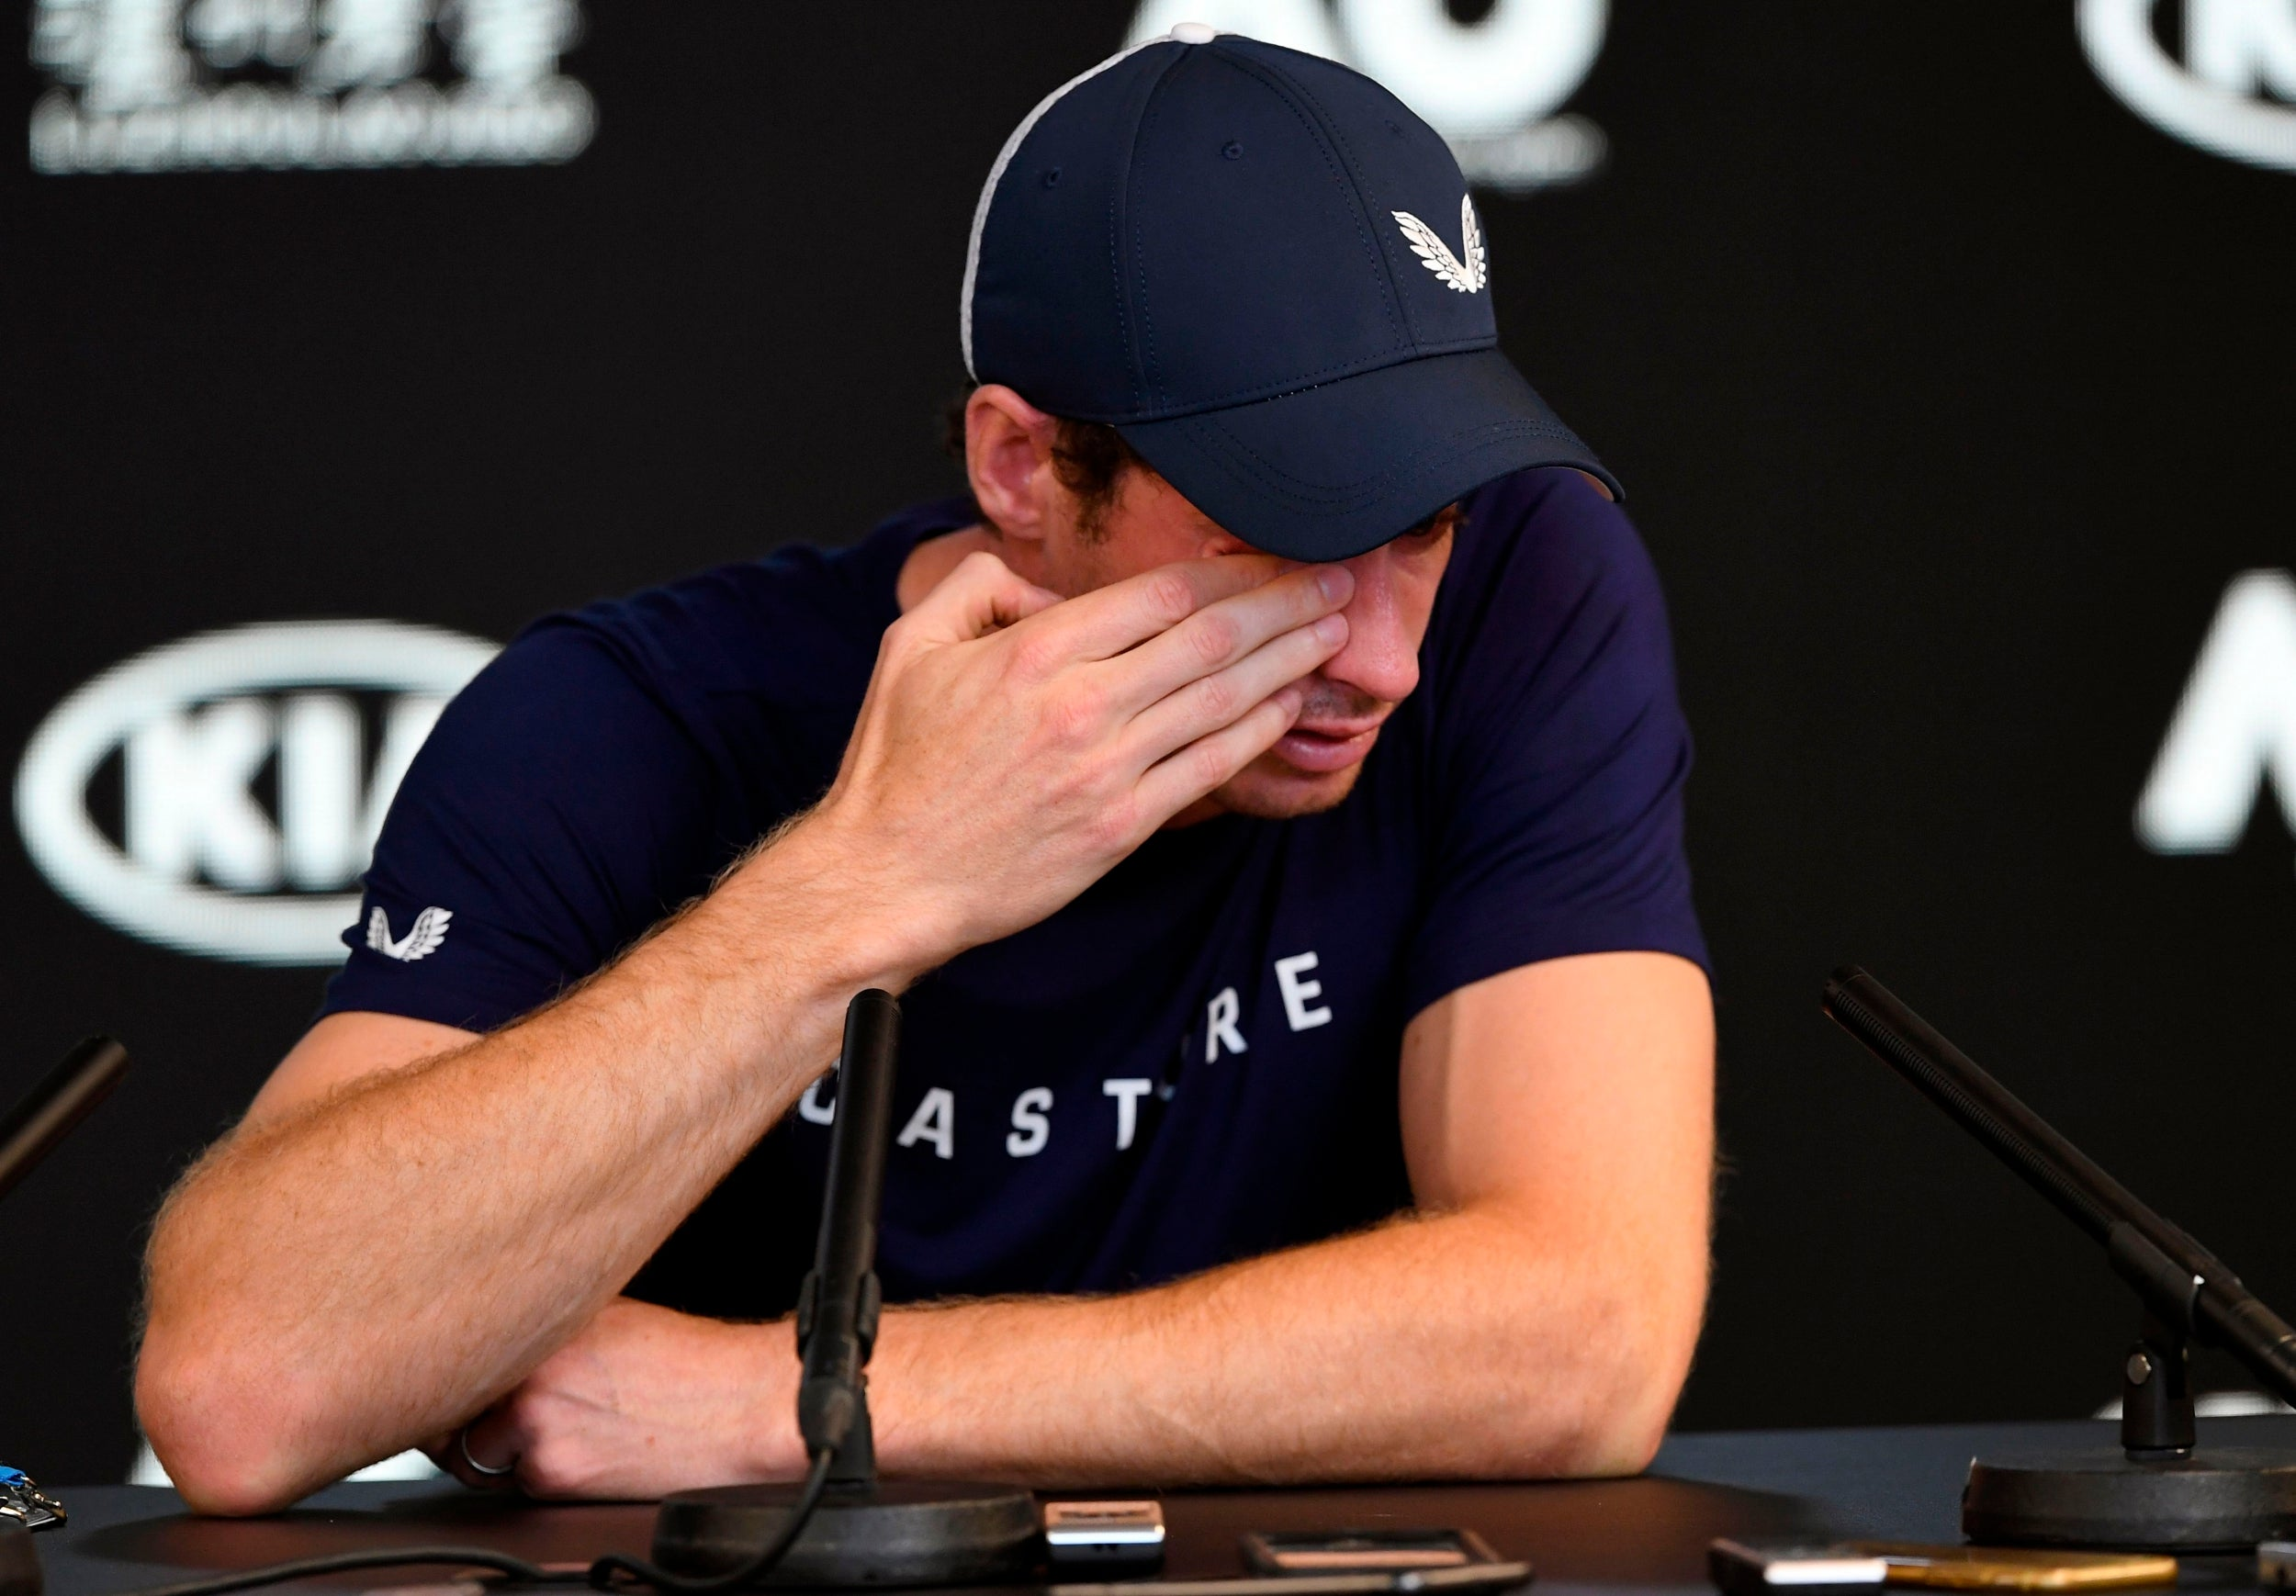 Andy Murray retirement: Scot ends emotional day with hug from mum Judy ahead of Australian Open